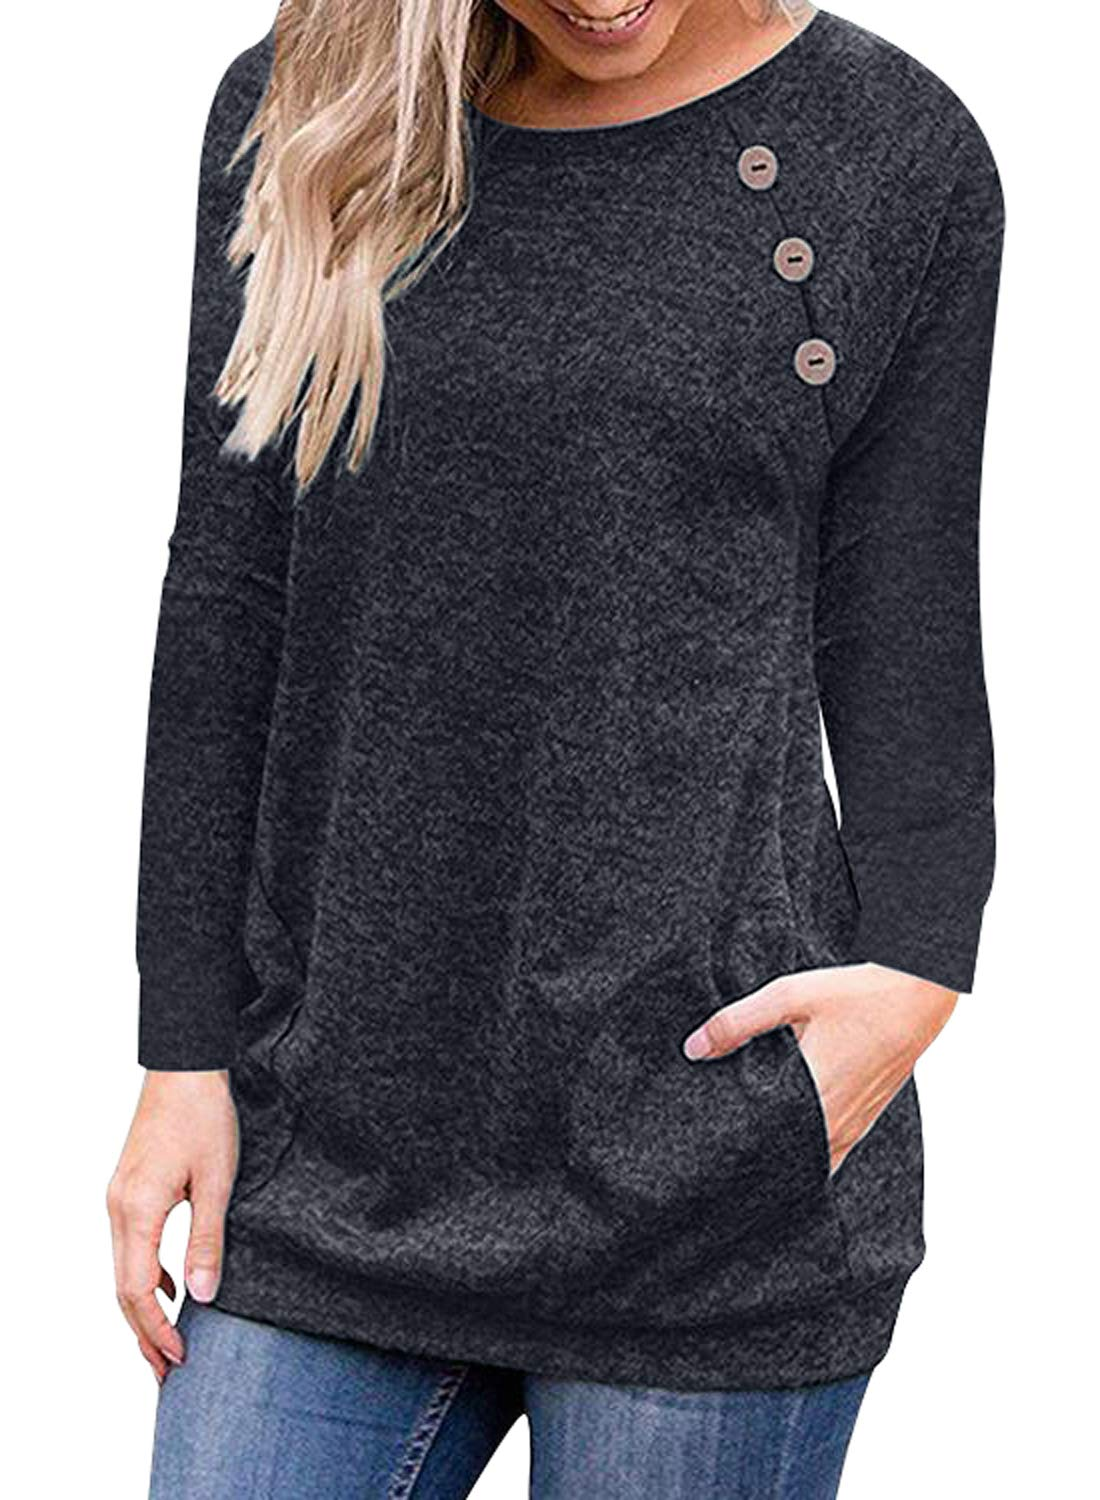 FIYOTE Womens Casual Short/Long Sleeve Round Neck Tunic Tops Loose Long T Shirt Blouses